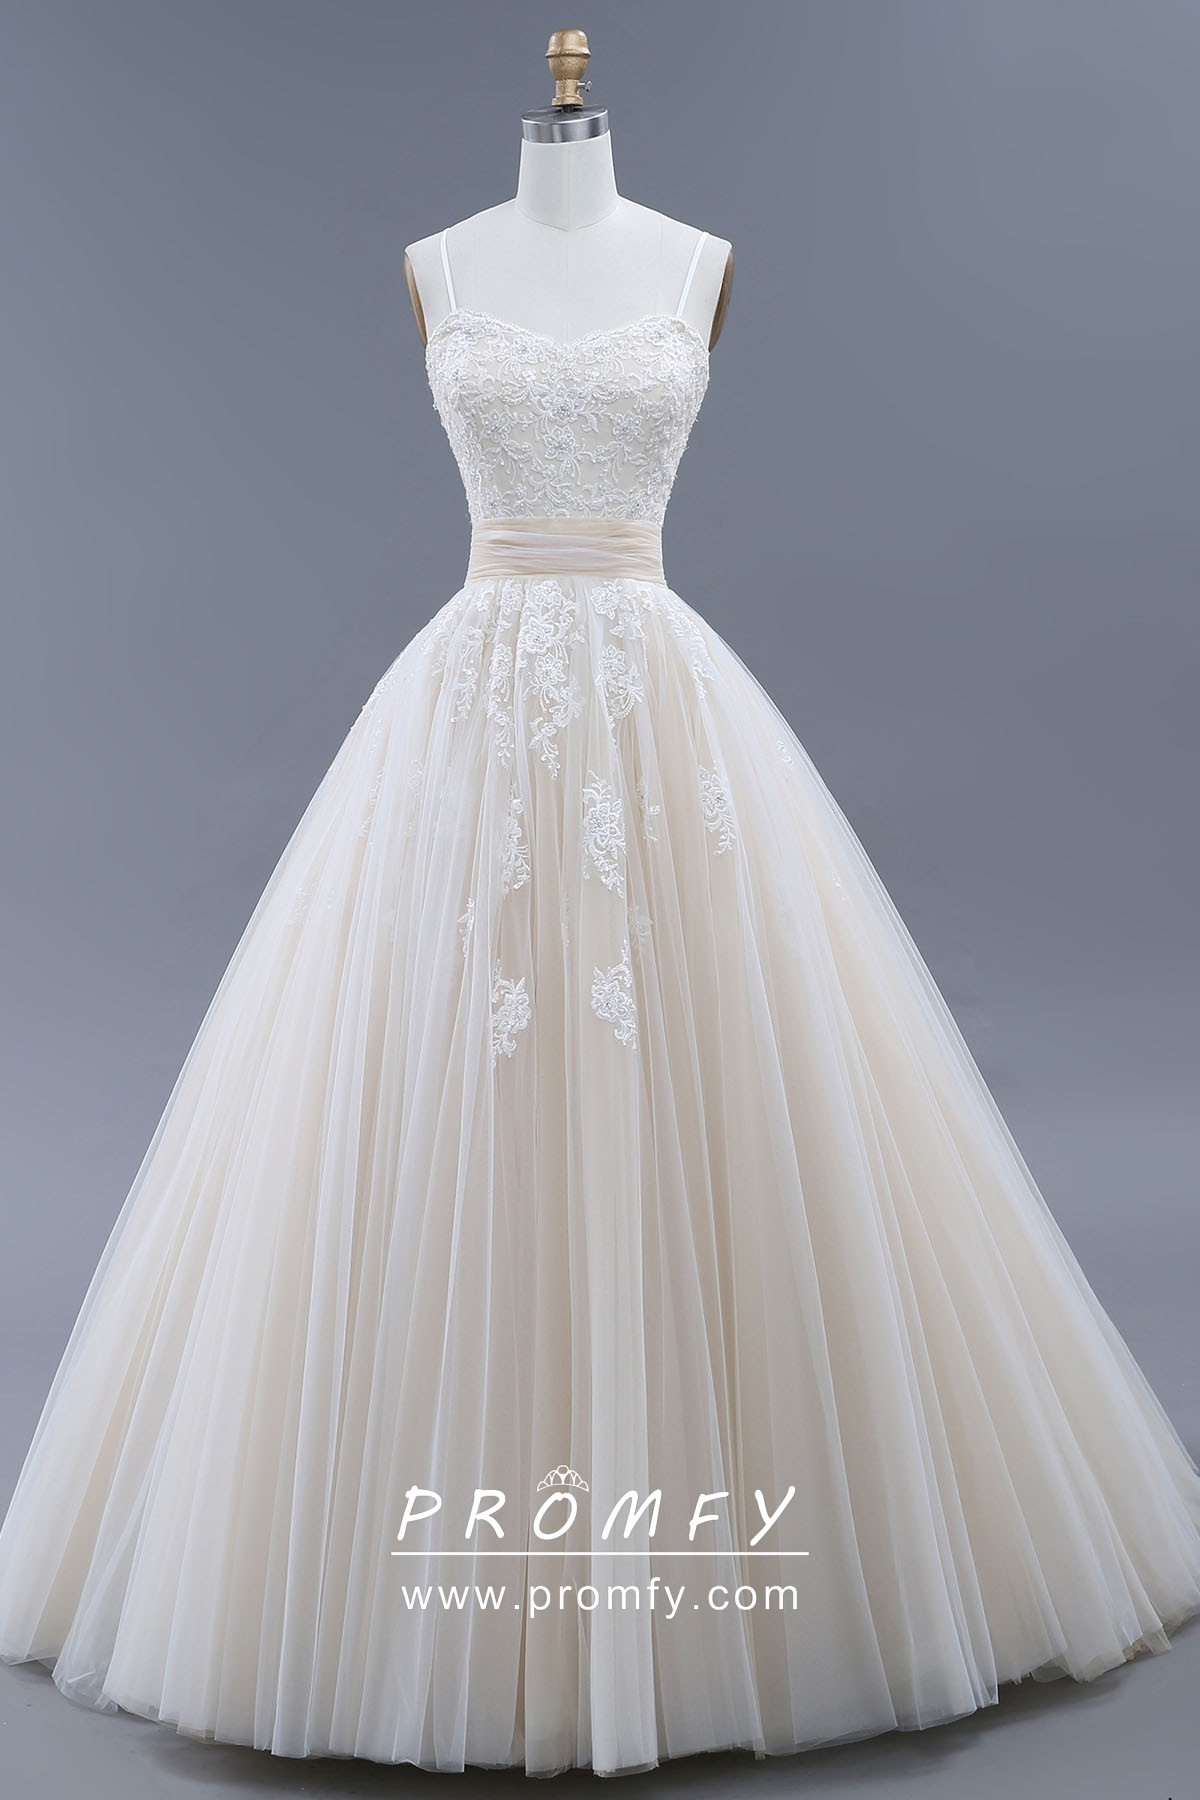 Princess Wedding Ball Gown Cream Lace Tulle Dress